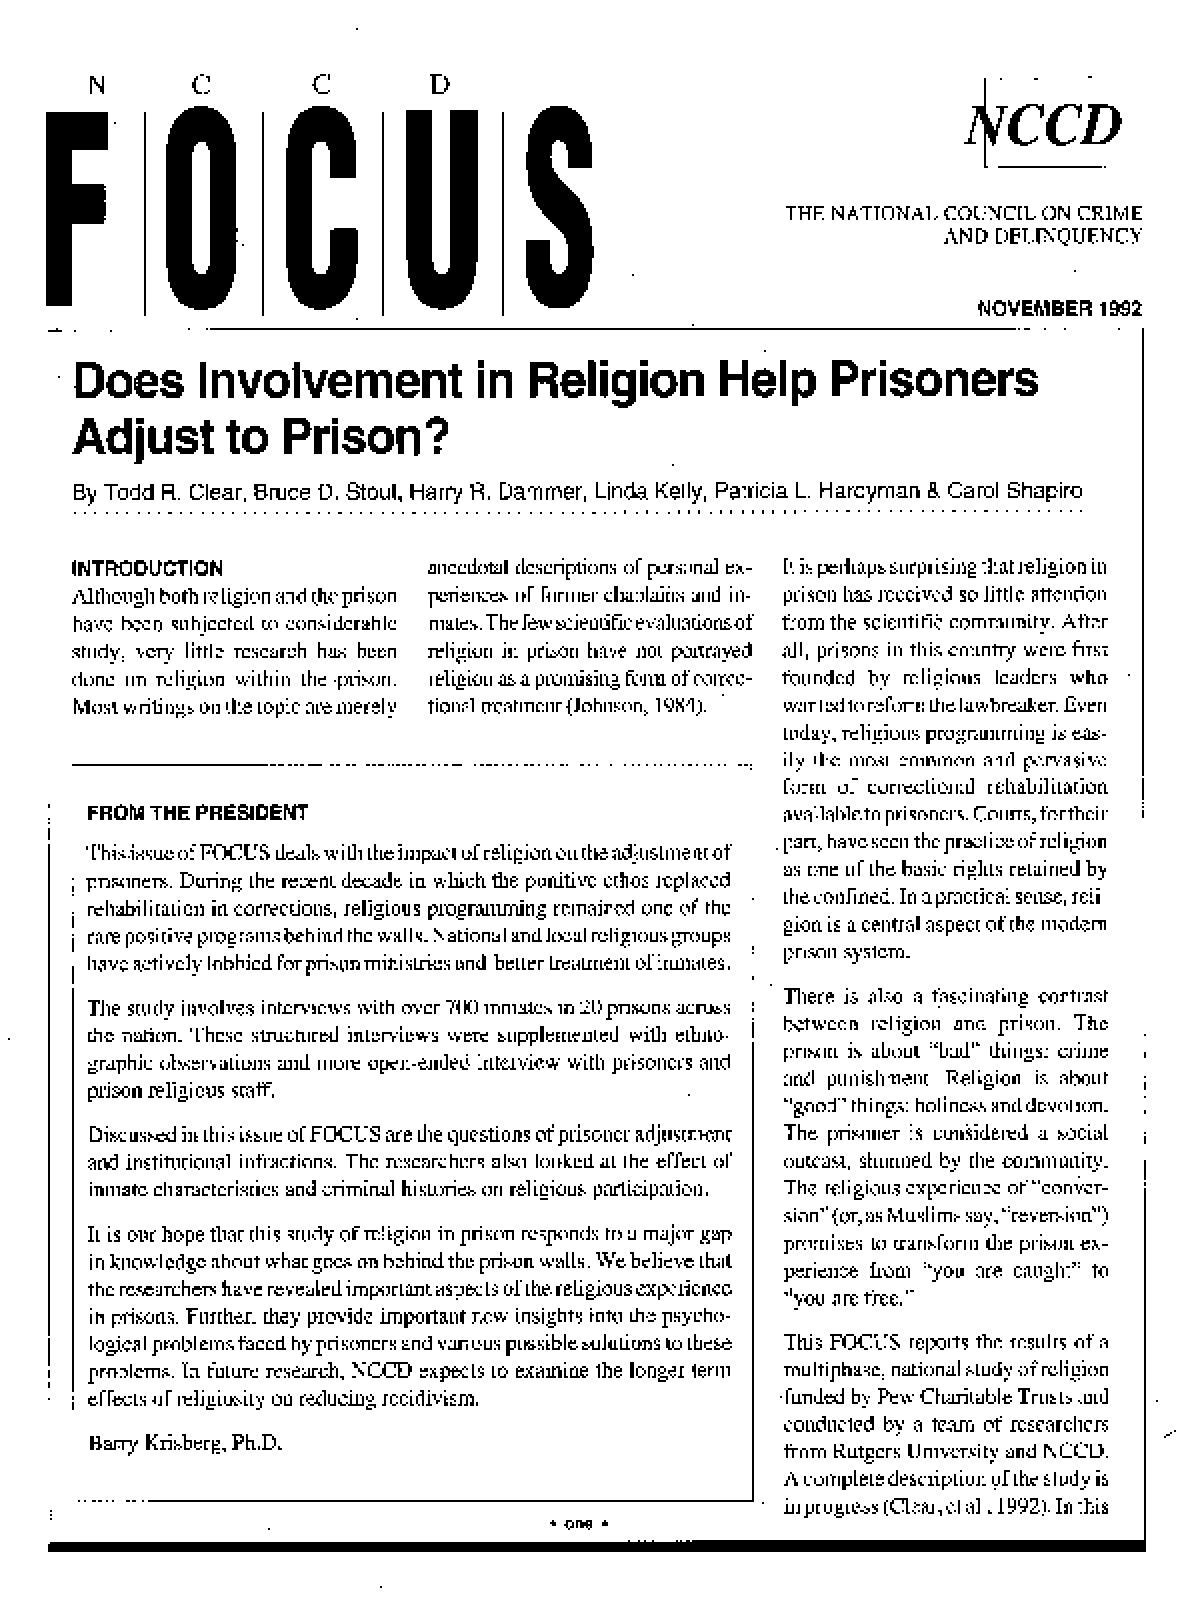 Does Involvement in Religion Help Prisoners Adjust to Prison? (FOCUS)